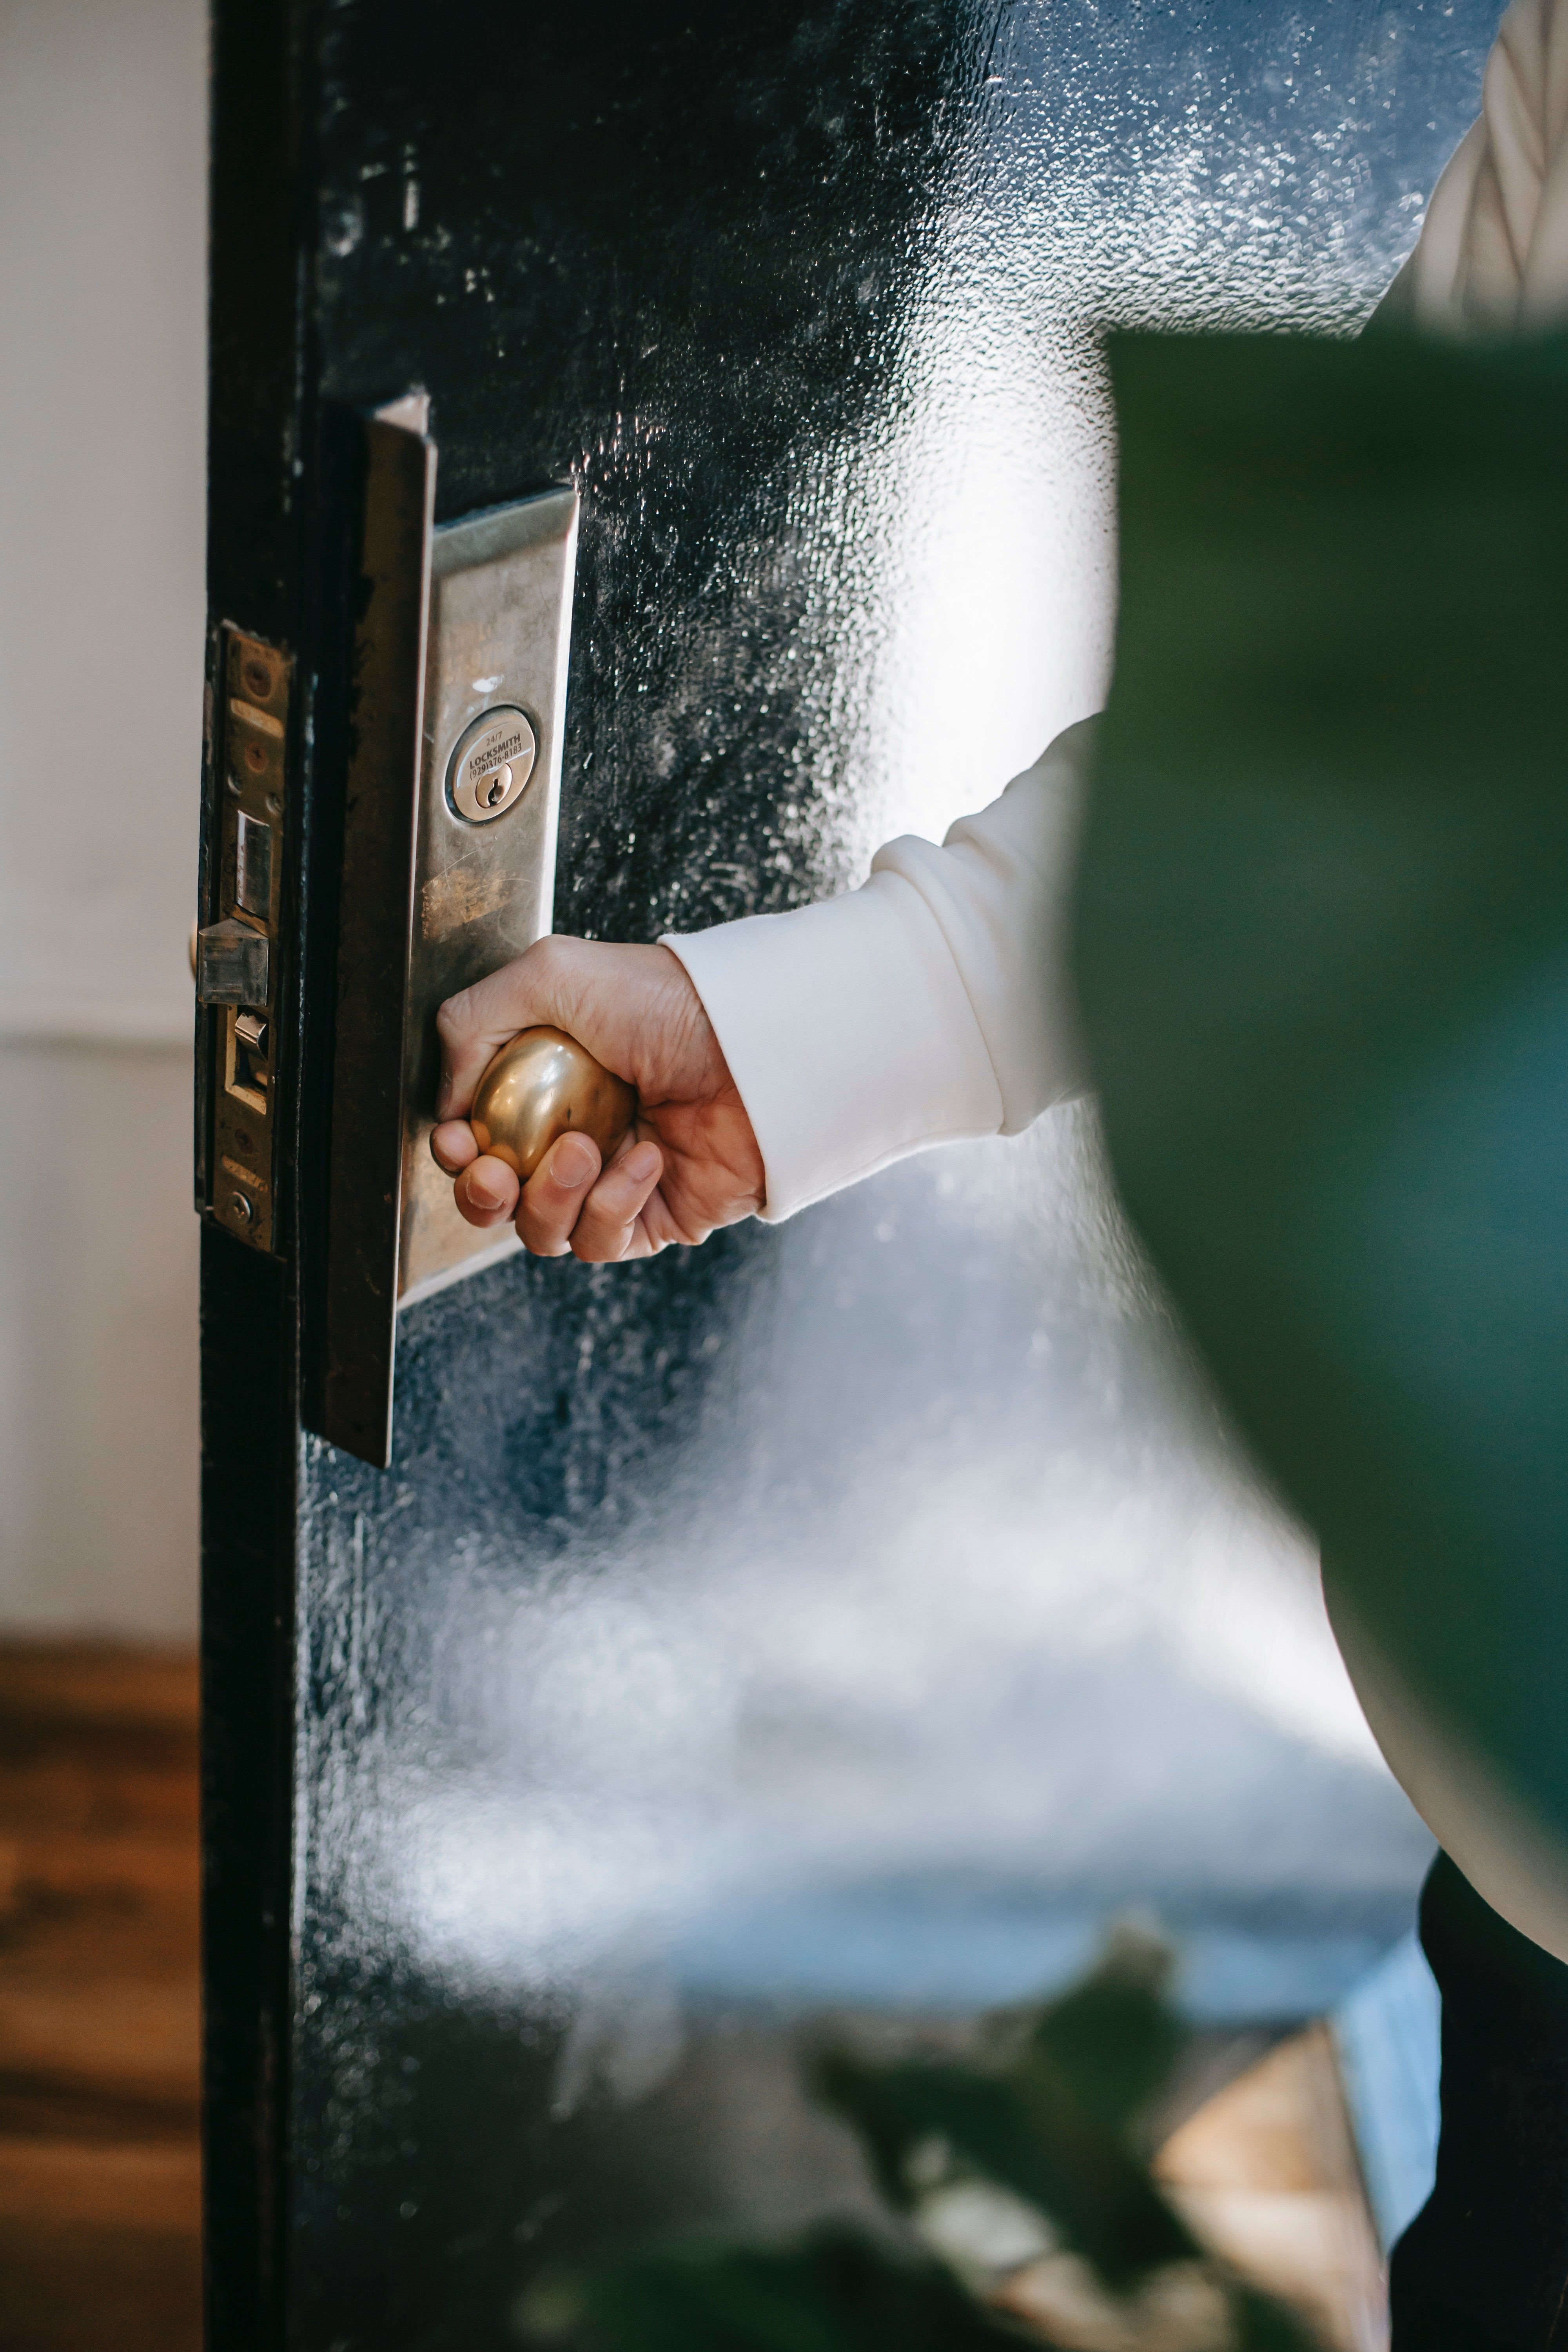 The door opened to reveal the old woman I helped the night before | Source: Pexels